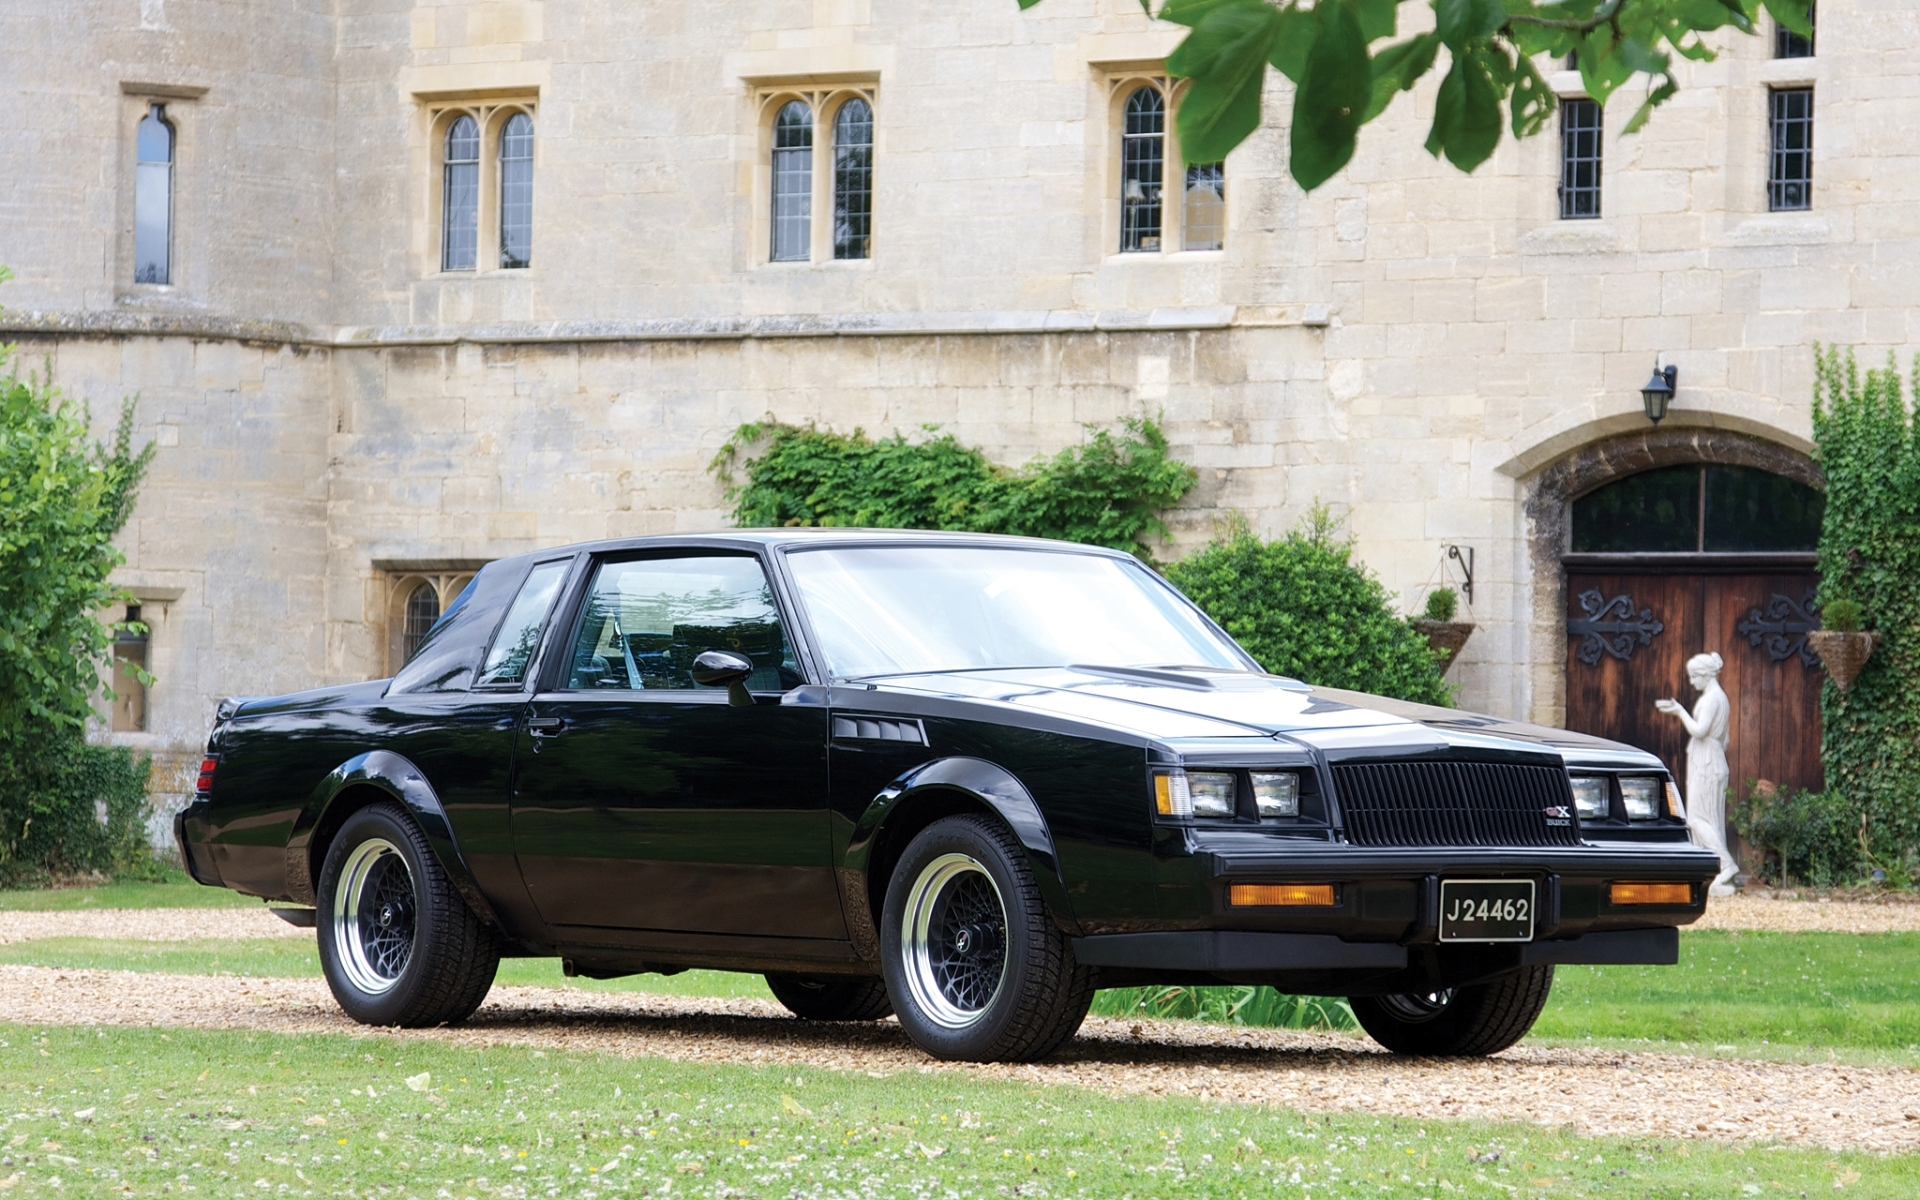 Wallpaper Of Buick Gnx Grand National 1987 Background Hd Image